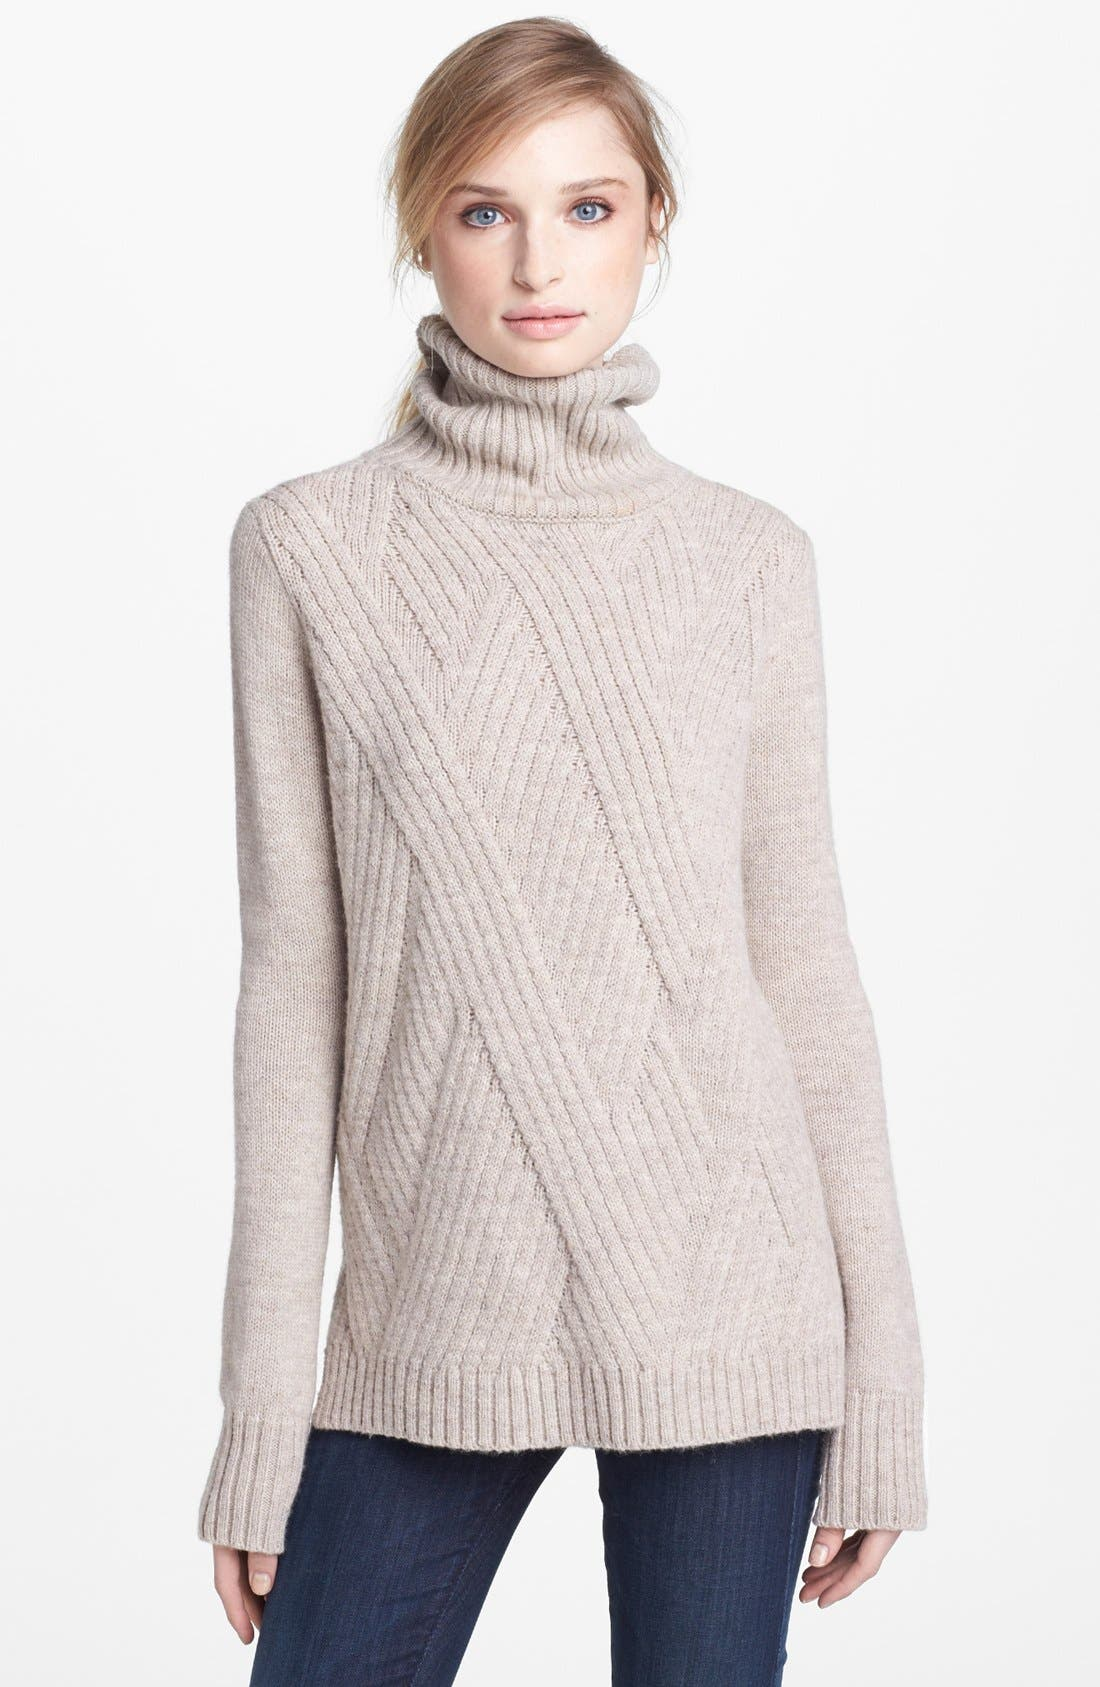 Alternate Image 1 Selected - Vince 'Travelling' Ribbed Turtleneck Sweater